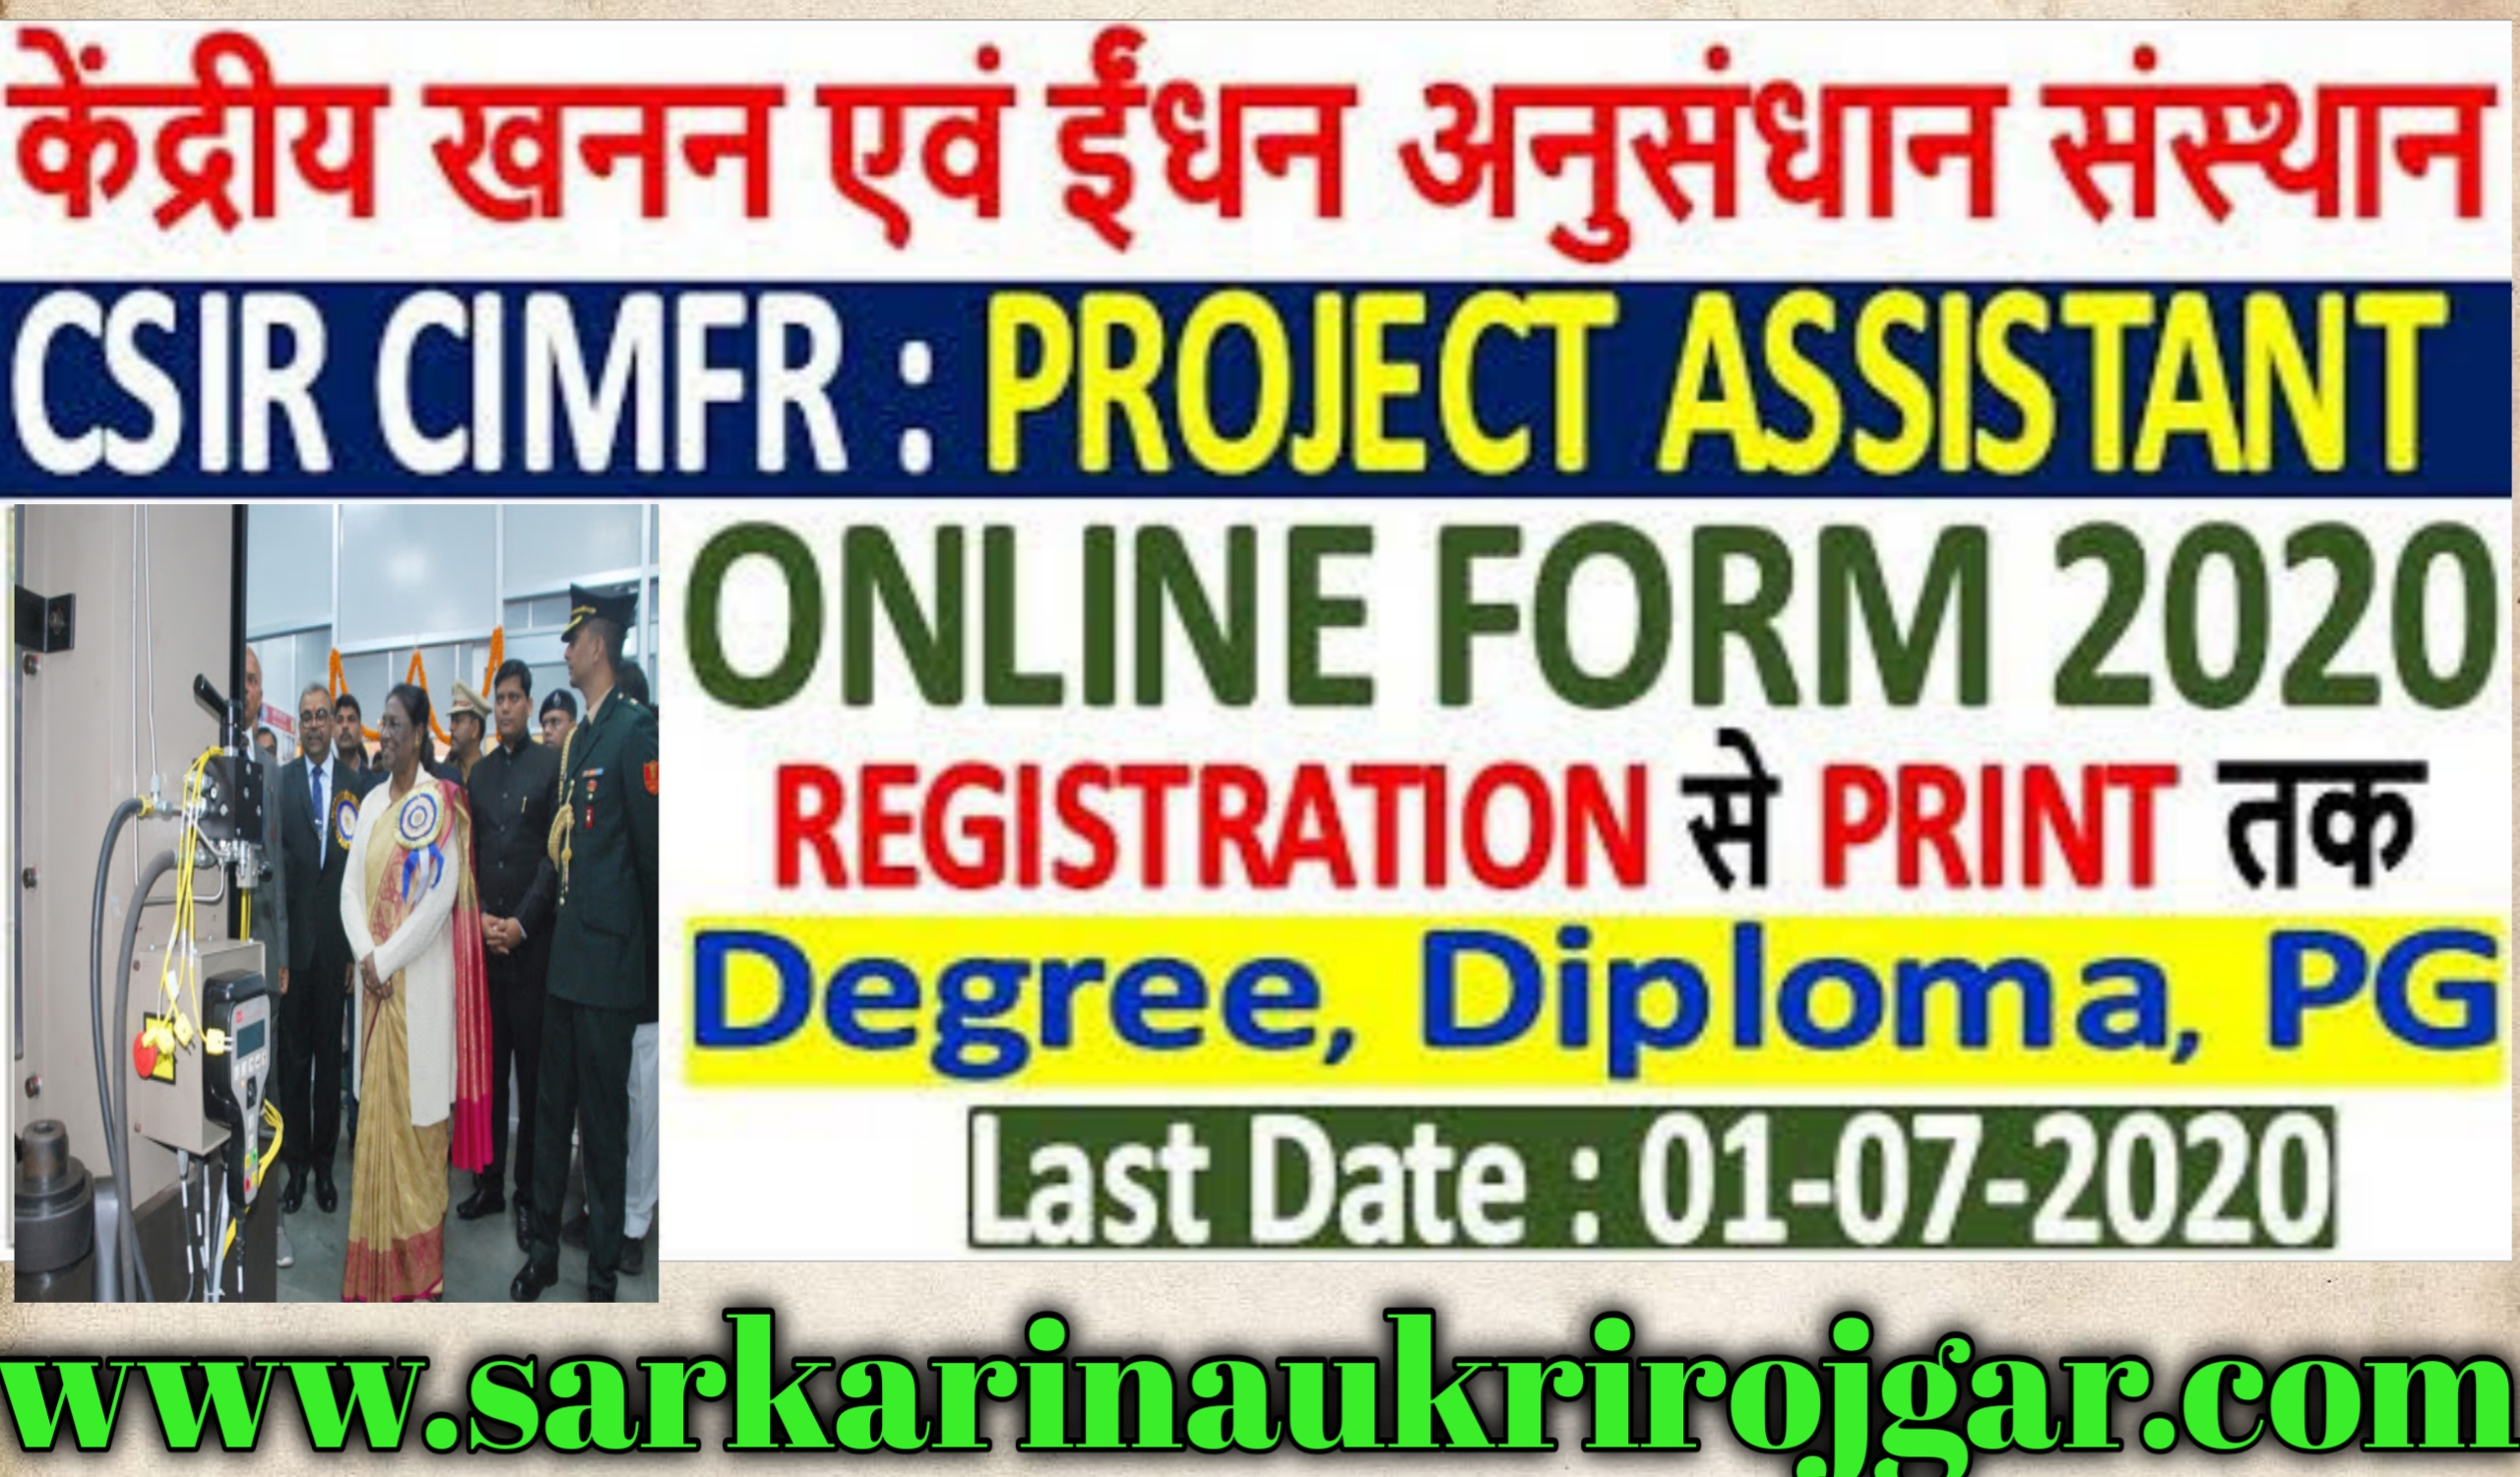 CIMFR Project Assistant Offline Form 2020